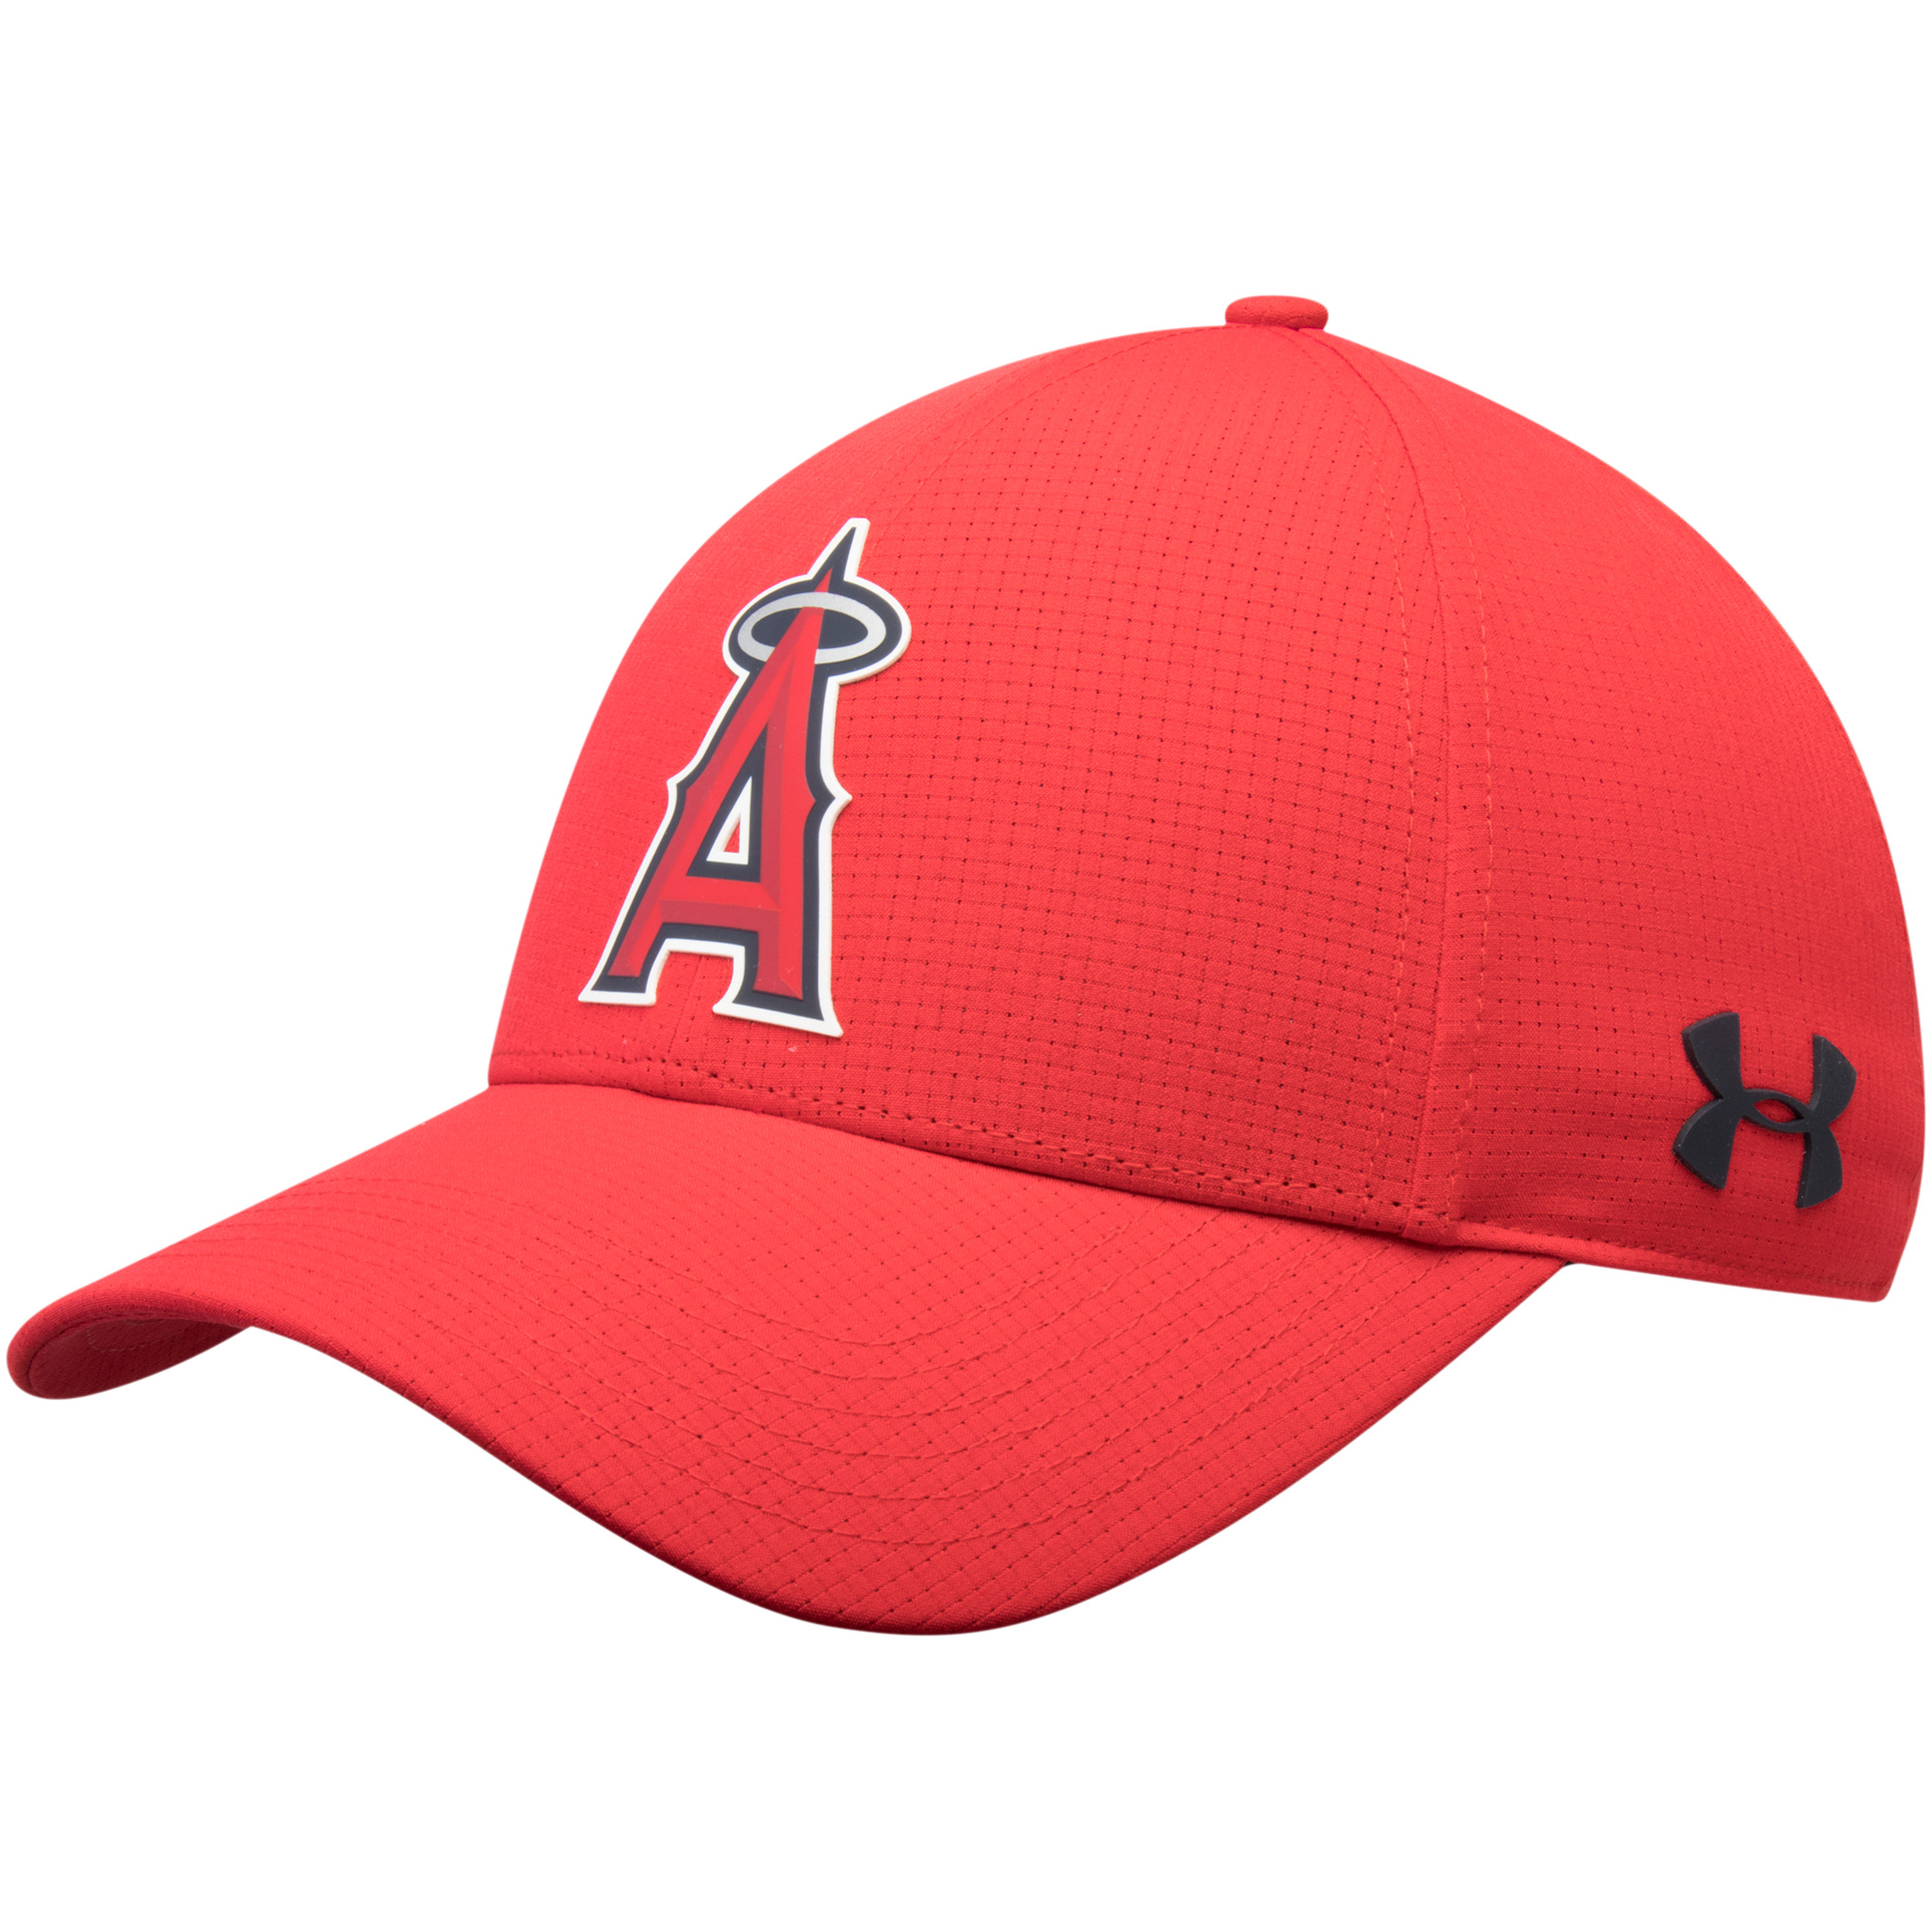 9ac74da954d4e ... shop product image los angeles angels under armour mlb driver cap 2.0  adjustable hat red osfa